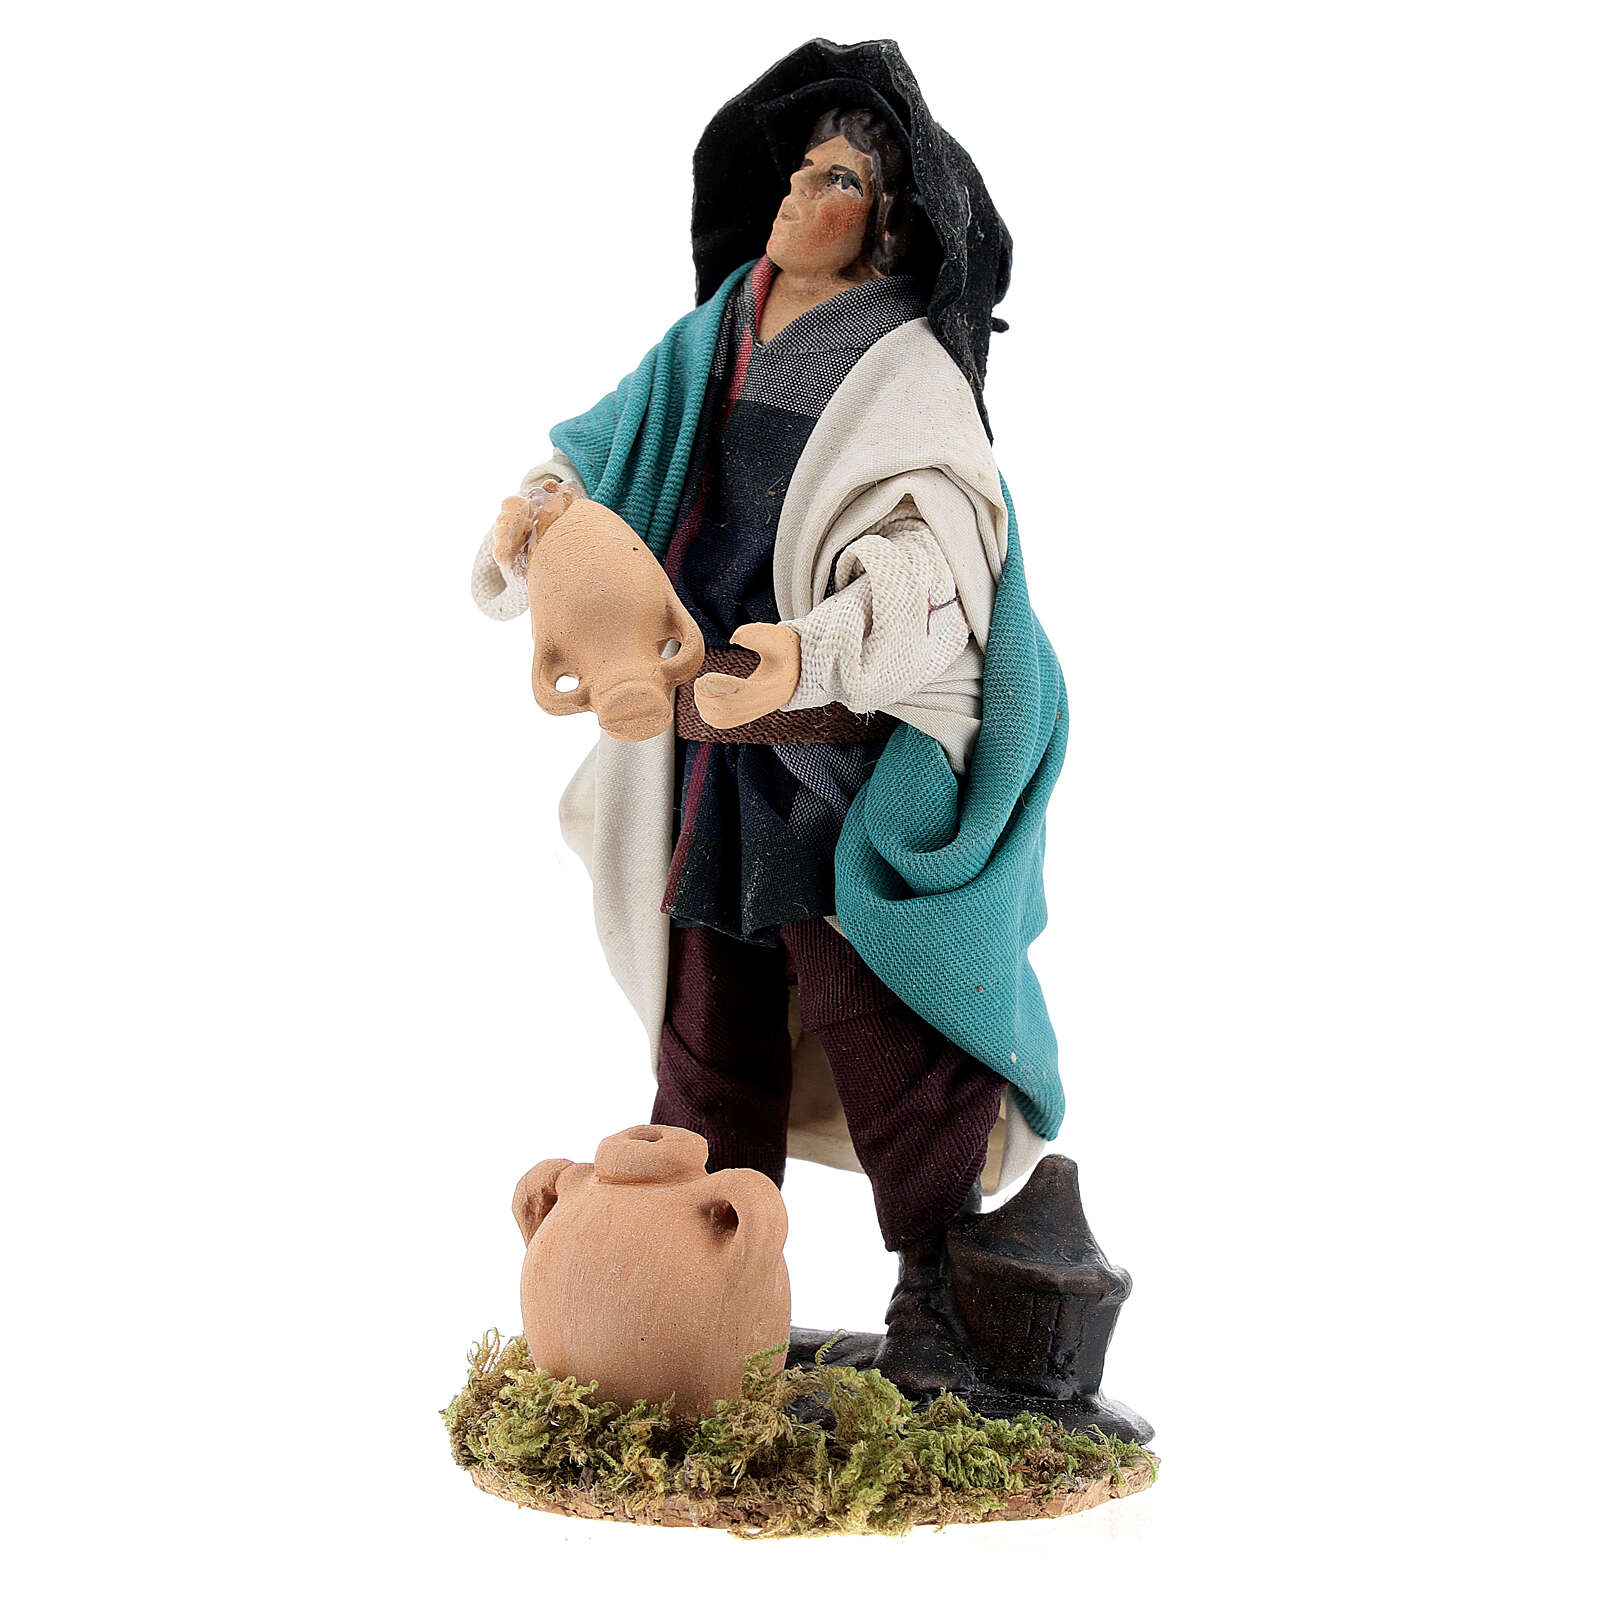 Man emptying jug Neapolitan Nativity scene 12 cm terracotta 4